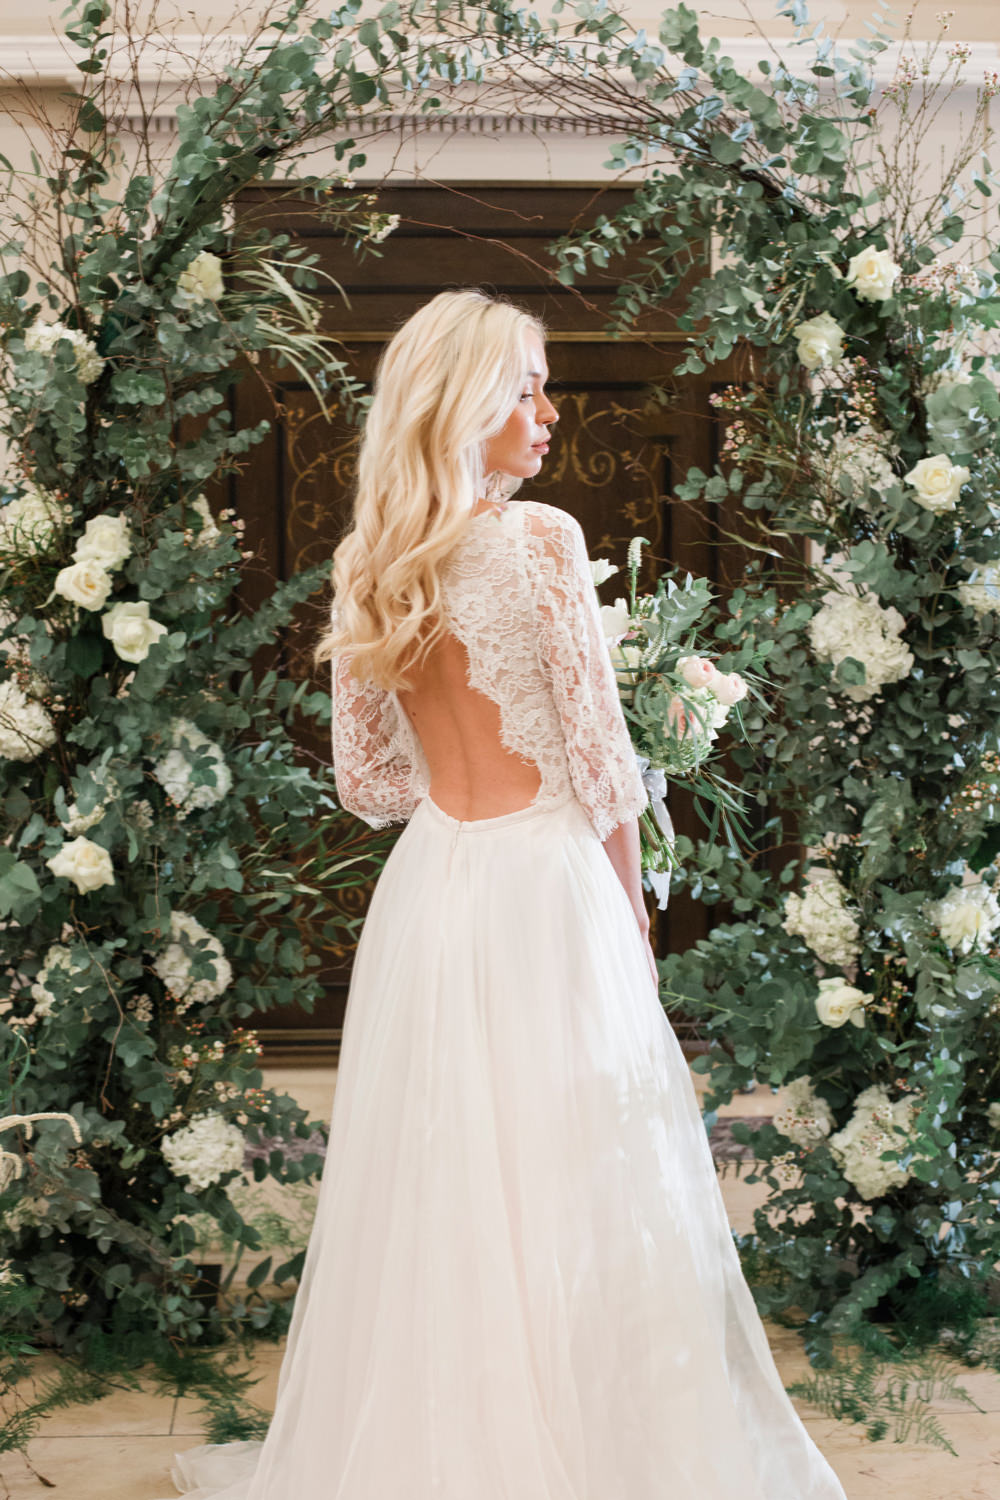 Bride Bridal Dress Gown Naomi Neoh Lace Sleeves Tulle Train Whimsical Elegant Wedding Ideas Mandorla London